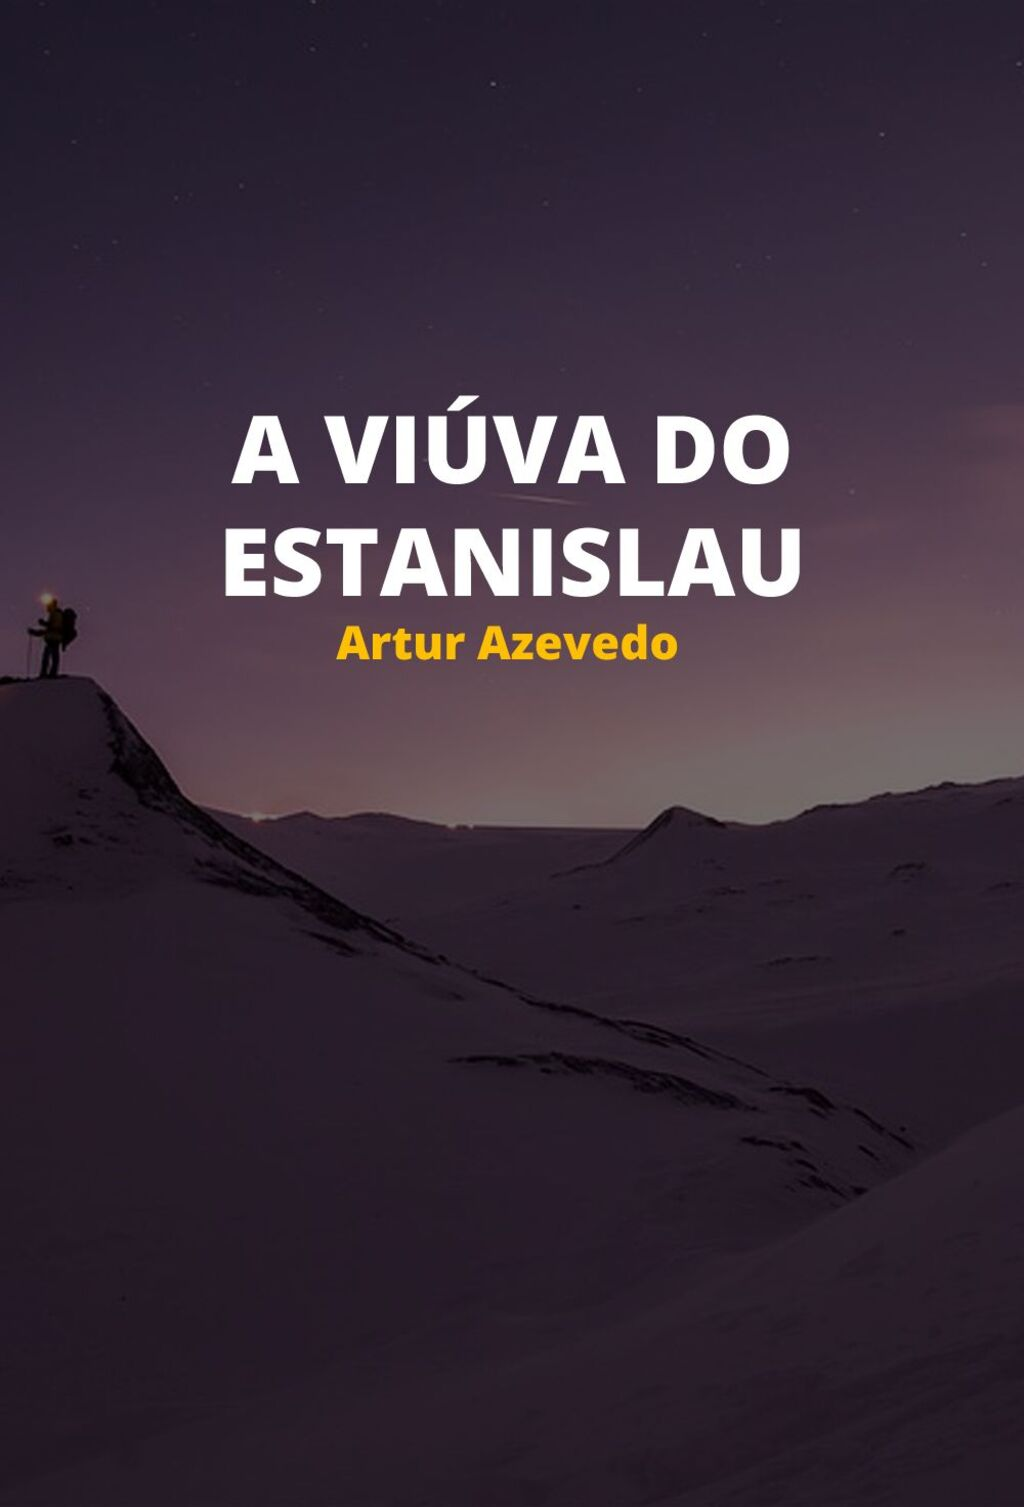 A Viúva do Estanislau